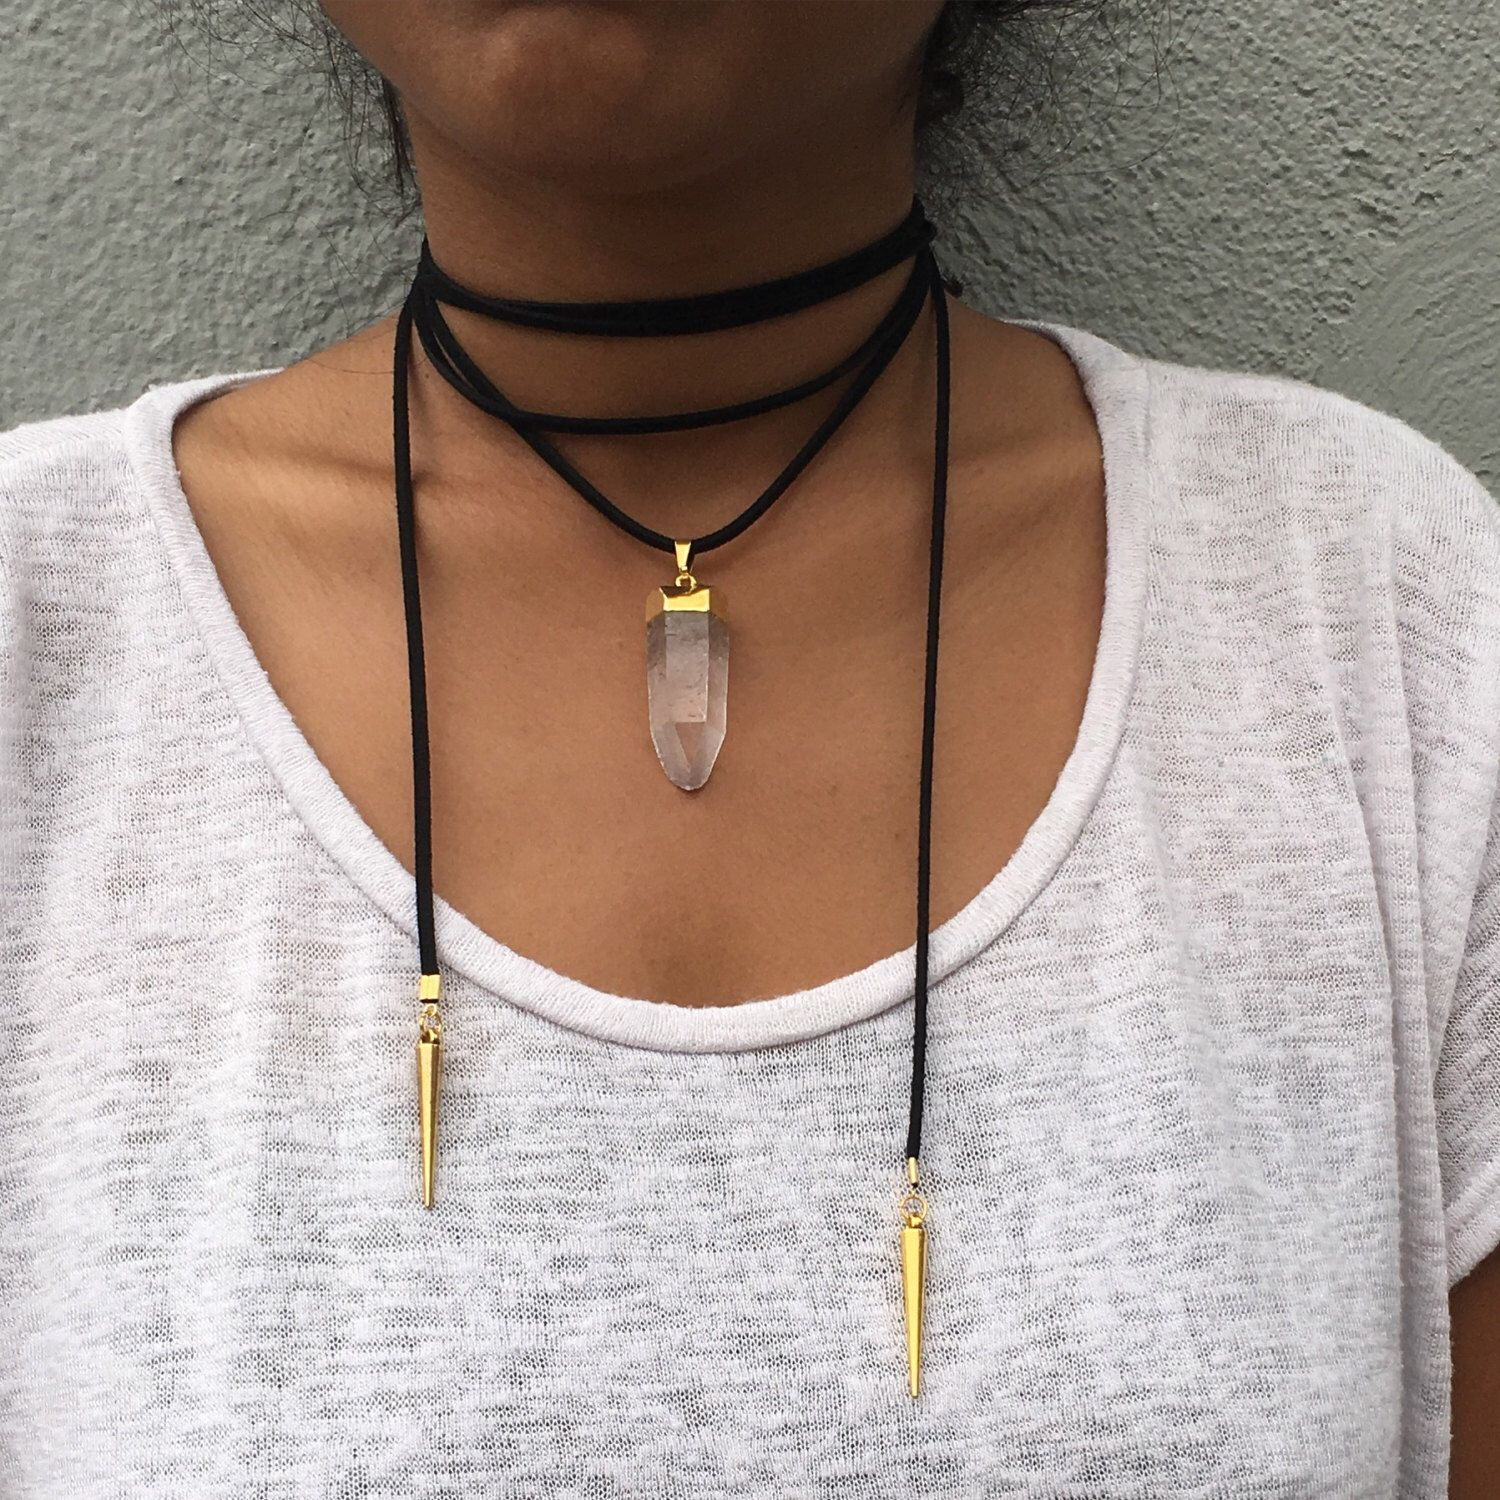 DECEMBER wrap necklace // vegan faux suede // quartz crystal pendant charm by madewithmoonlight on Etsy https://www.etsy.com/listing/398879099/december-wrap-necklace-vegan-faux-suede